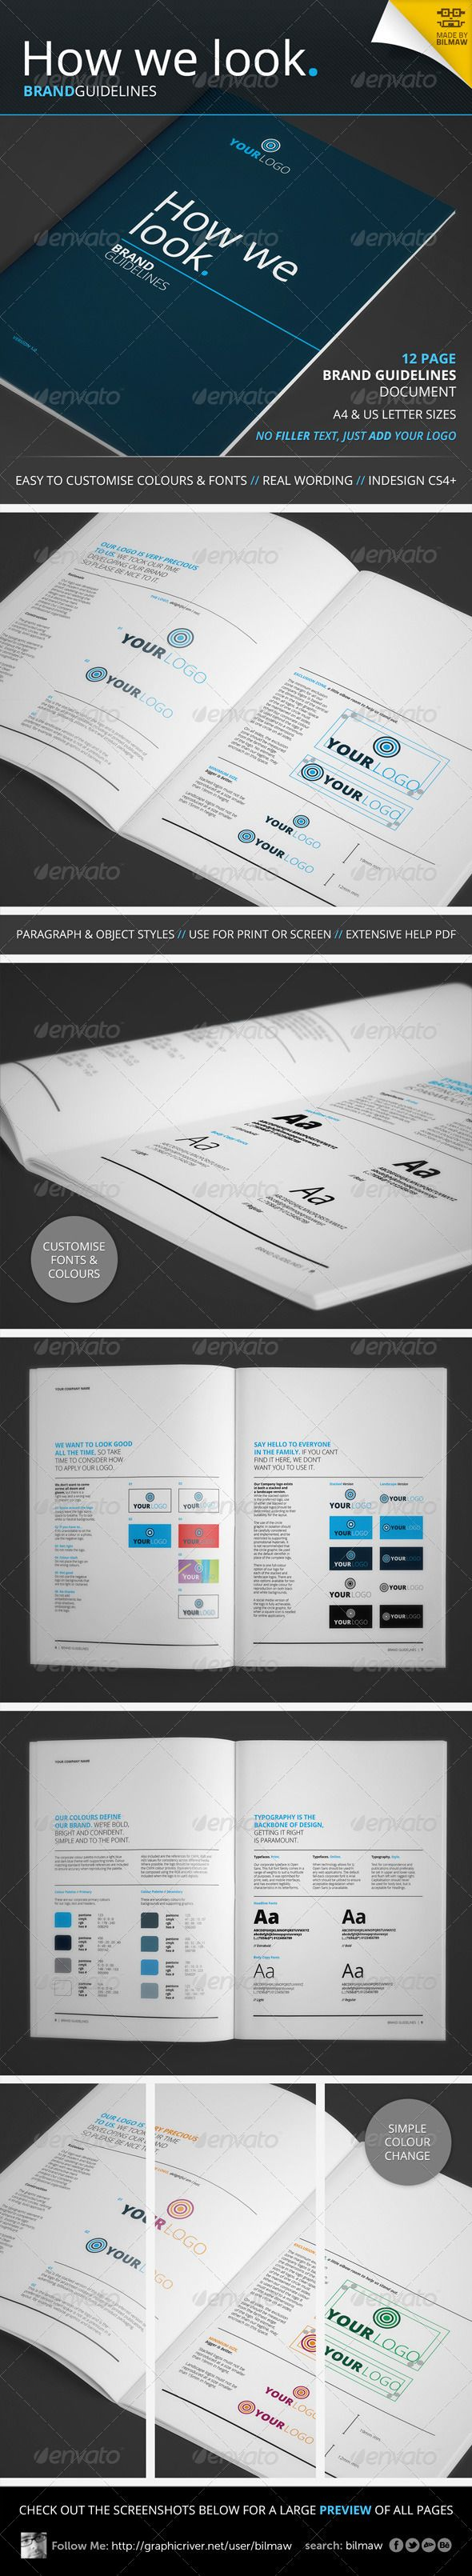 How We Look - Brand Guidelines - i like the idea of laying your guidelines out in a book... i didn't think to do that.